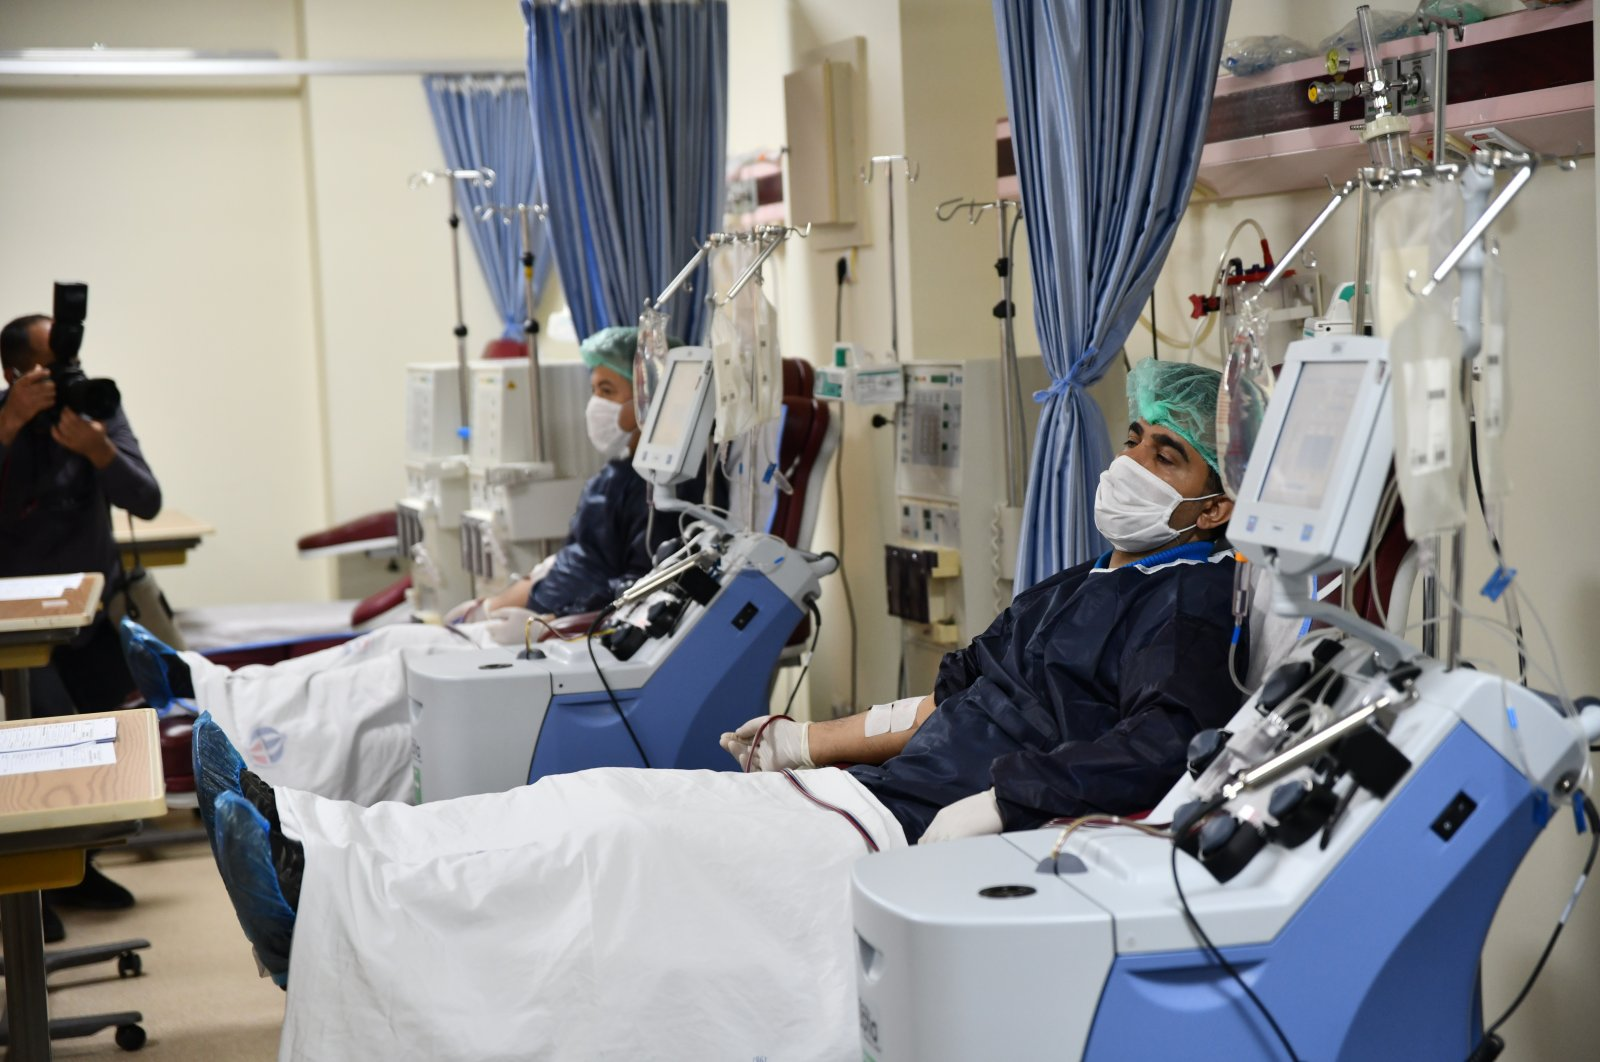 Three people who recovered from the novel coronavirus donate plasma for the treatment of COVID-19 in Gaziantep, Turkey, April 23, 2020. (AA Photo)